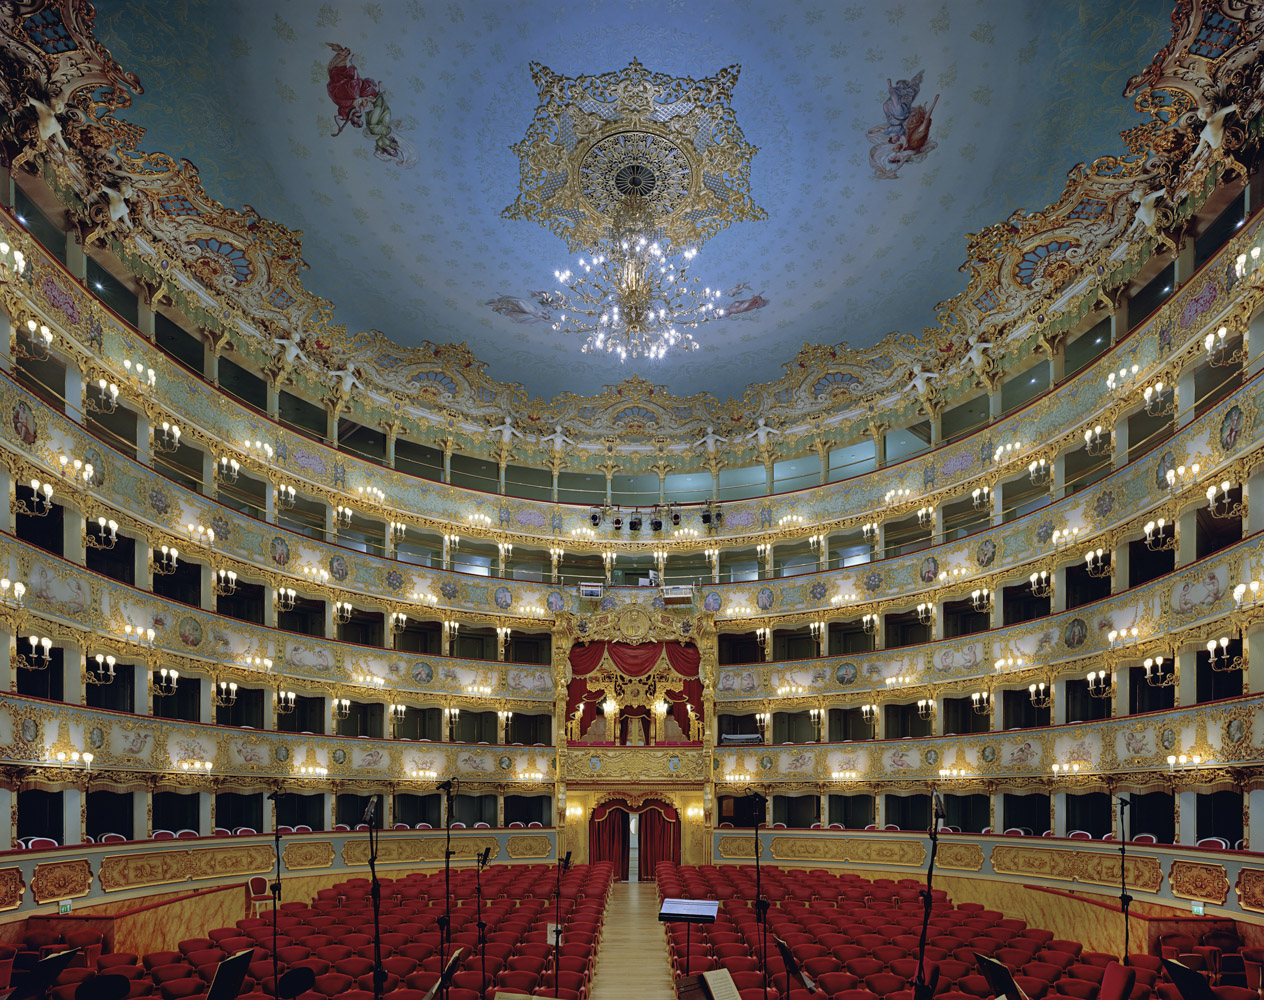 La Fenice, Venice, Italy, 2008, by David Leventi. Fujicolor Crystal Archive print of the interior of the opera house, mounted to Dibond